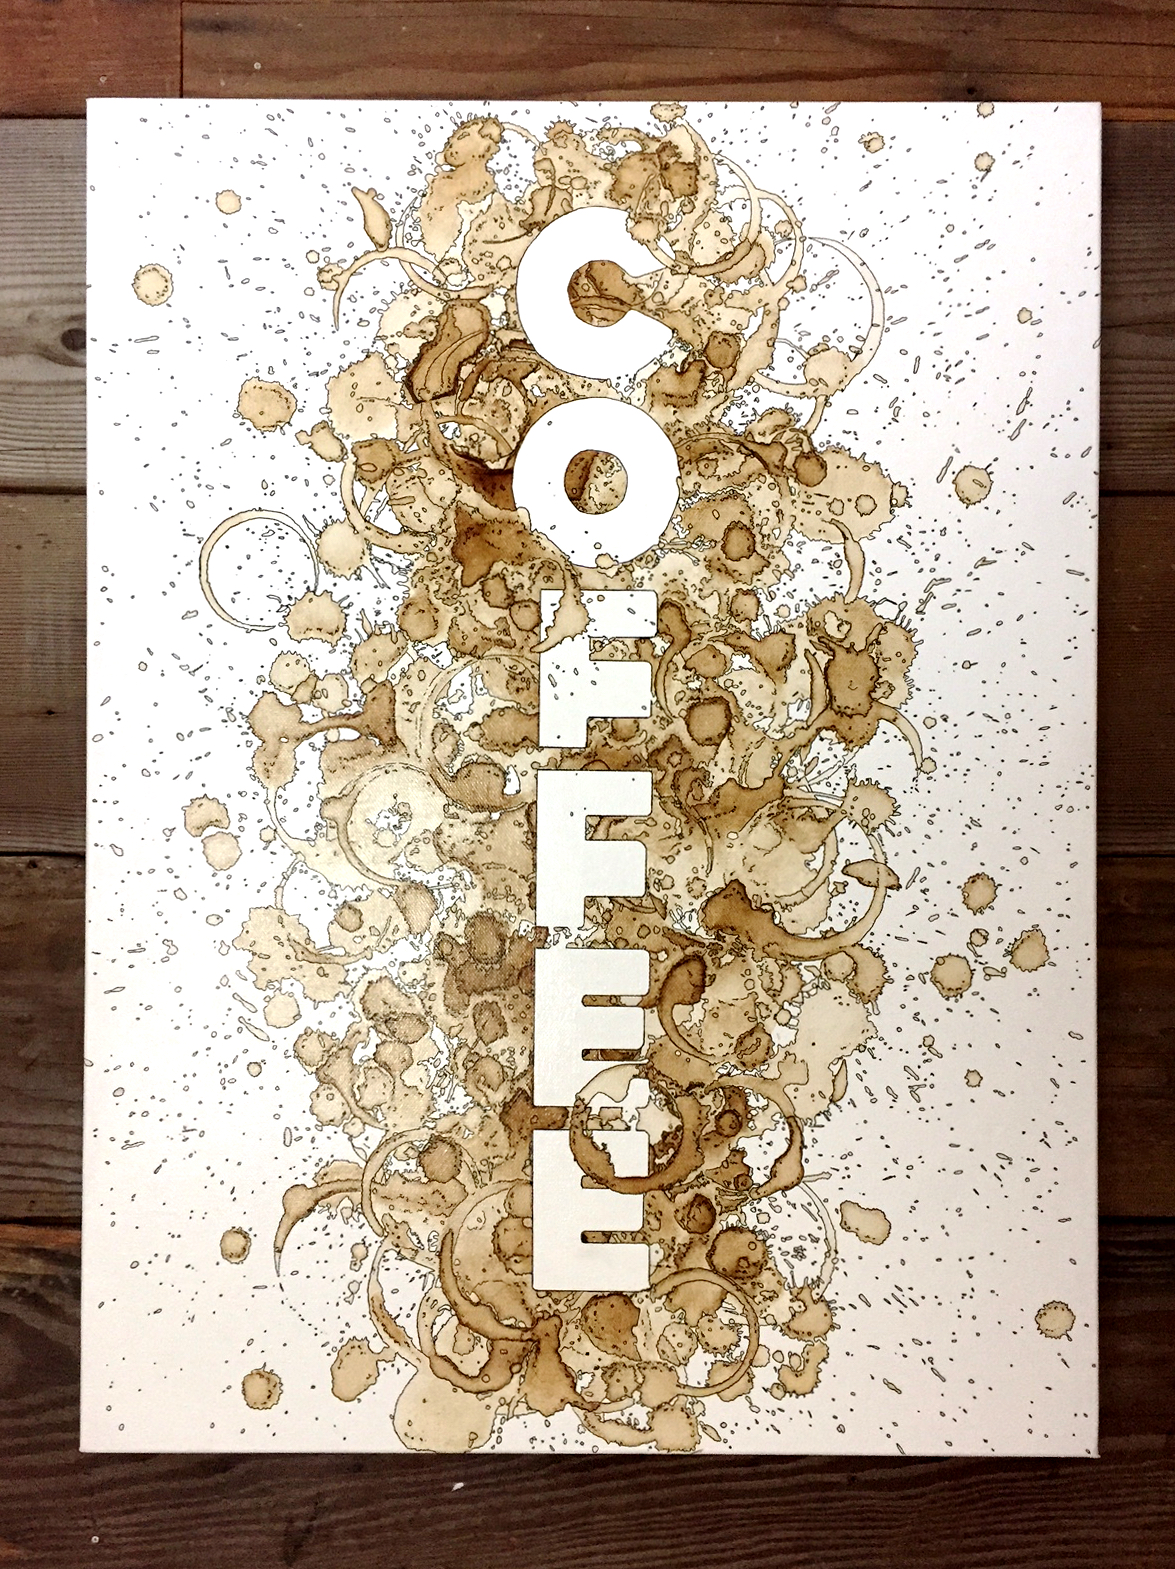 Jon Norquist is a Major in the Army, a father of five, an engineer and a coffee artist. He creates his amazing work one splatter and spill at a time from his home near Tacoma. Jon's business, aptly titled Coffee on Canvas, has been growing by leaps and bounds including his original art, and work for corporate clients. Image: Coffee on Canvas